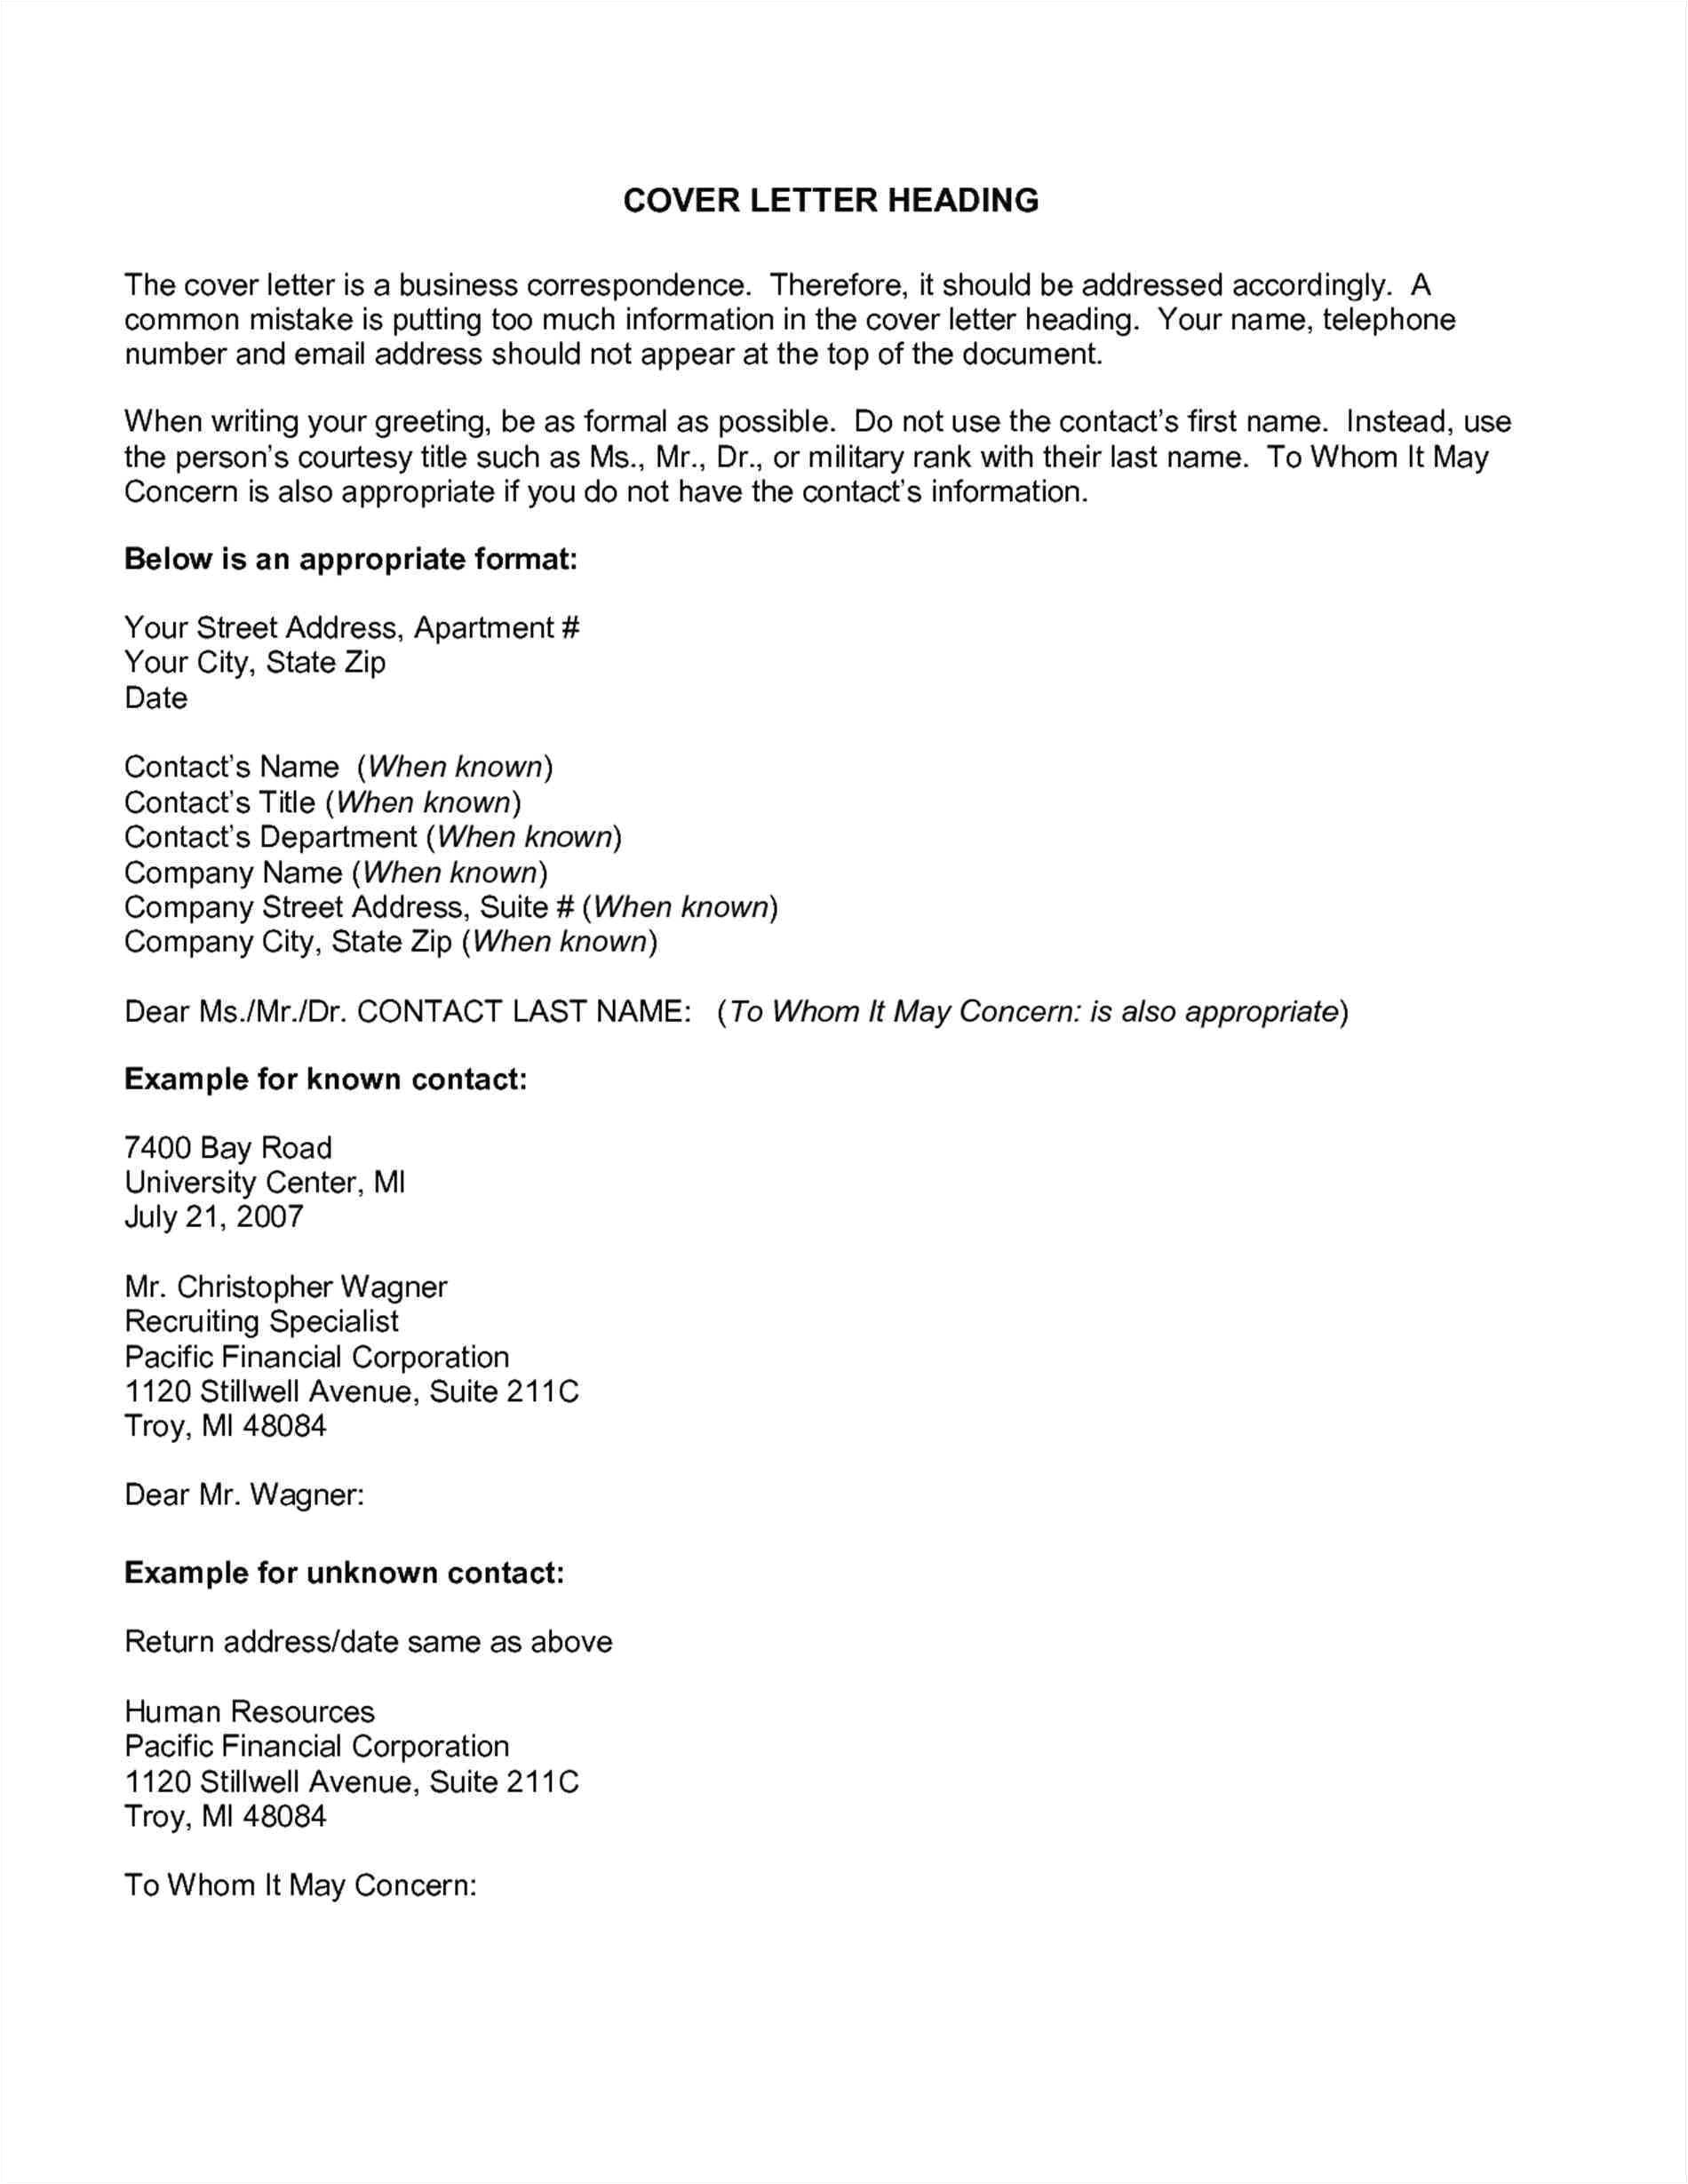 6 7 cover letter no name